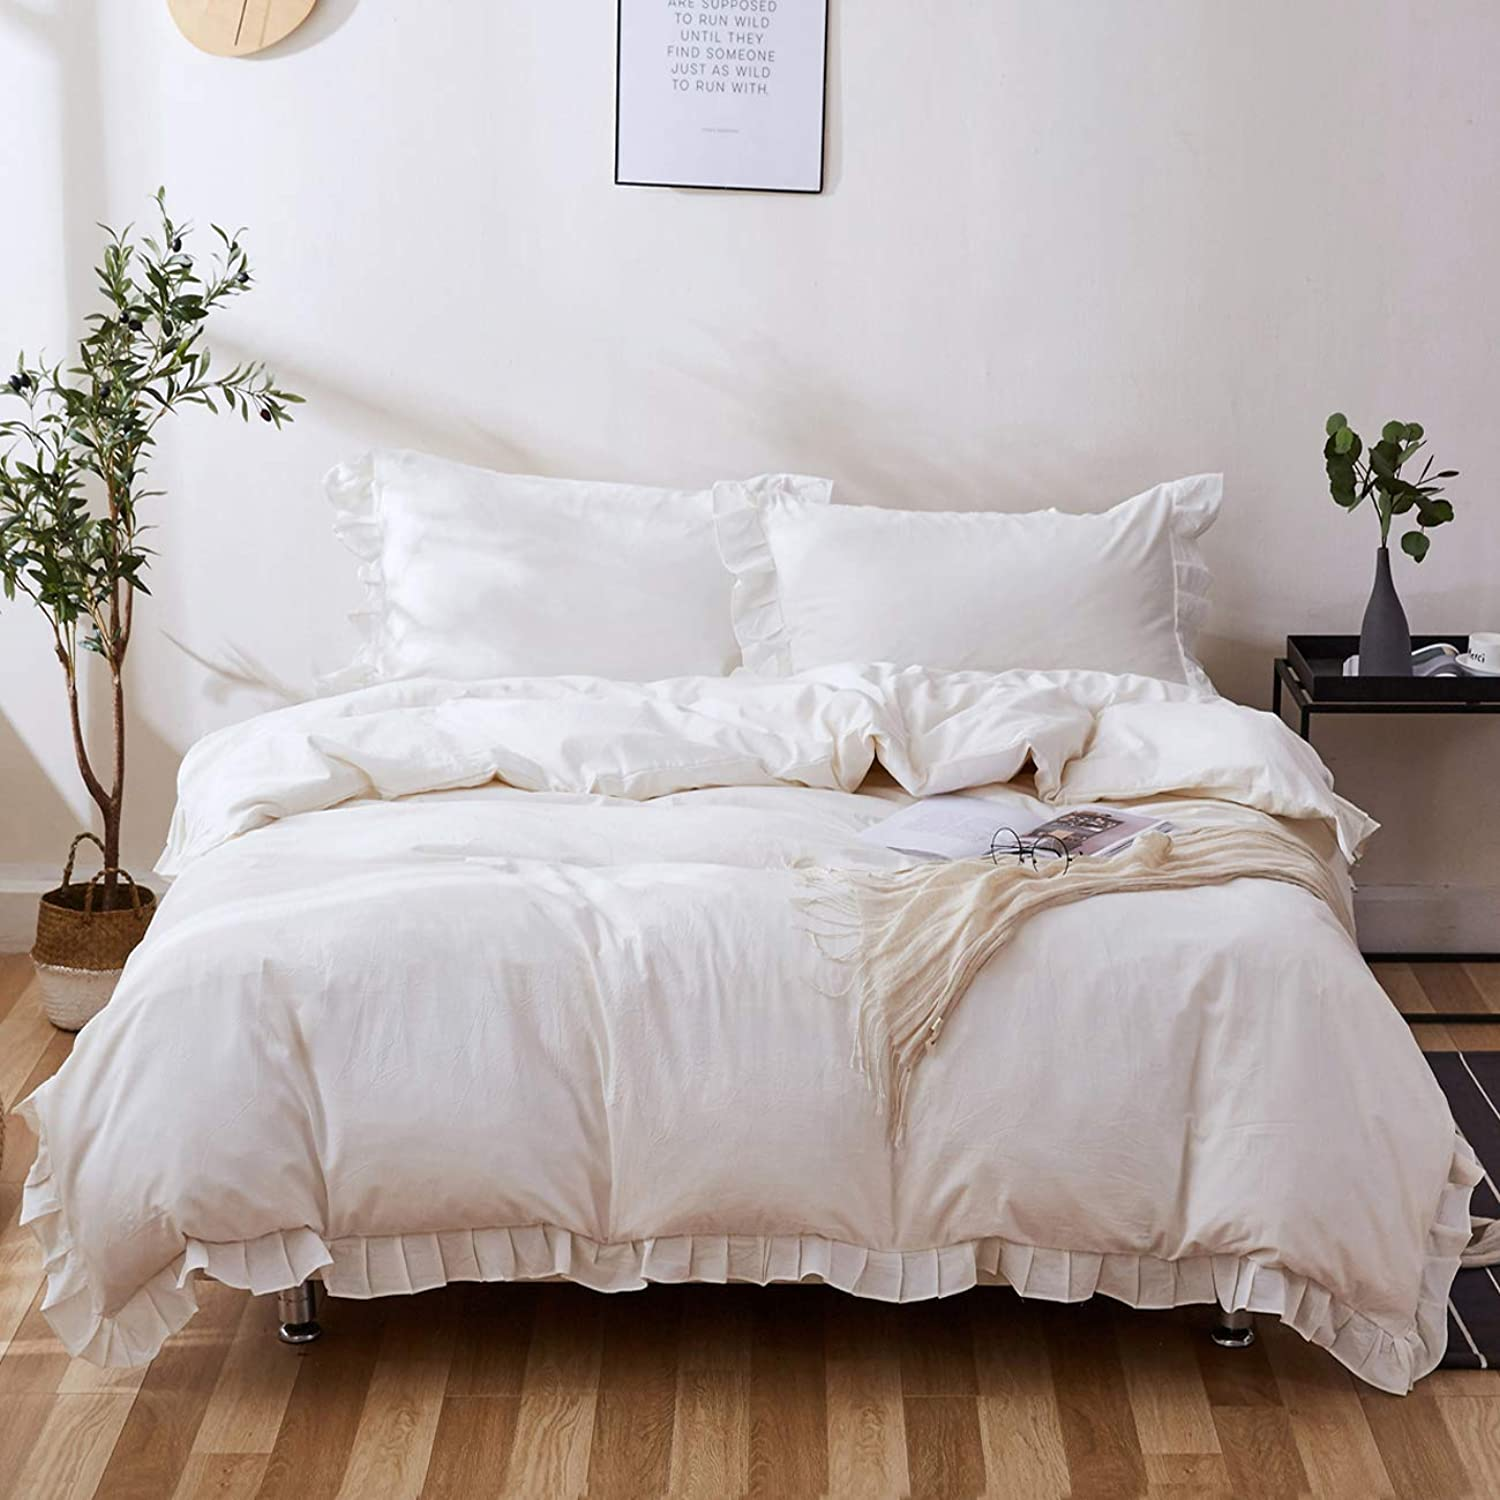 ZYEN Ruffles Duvet Cover Twin Set White Soft 100% Washed Cotton Duvet Cover Set Kids Teens Adult Wrinkle Look Frilled Duvet Cover with Zipper Closure (Twin, White)